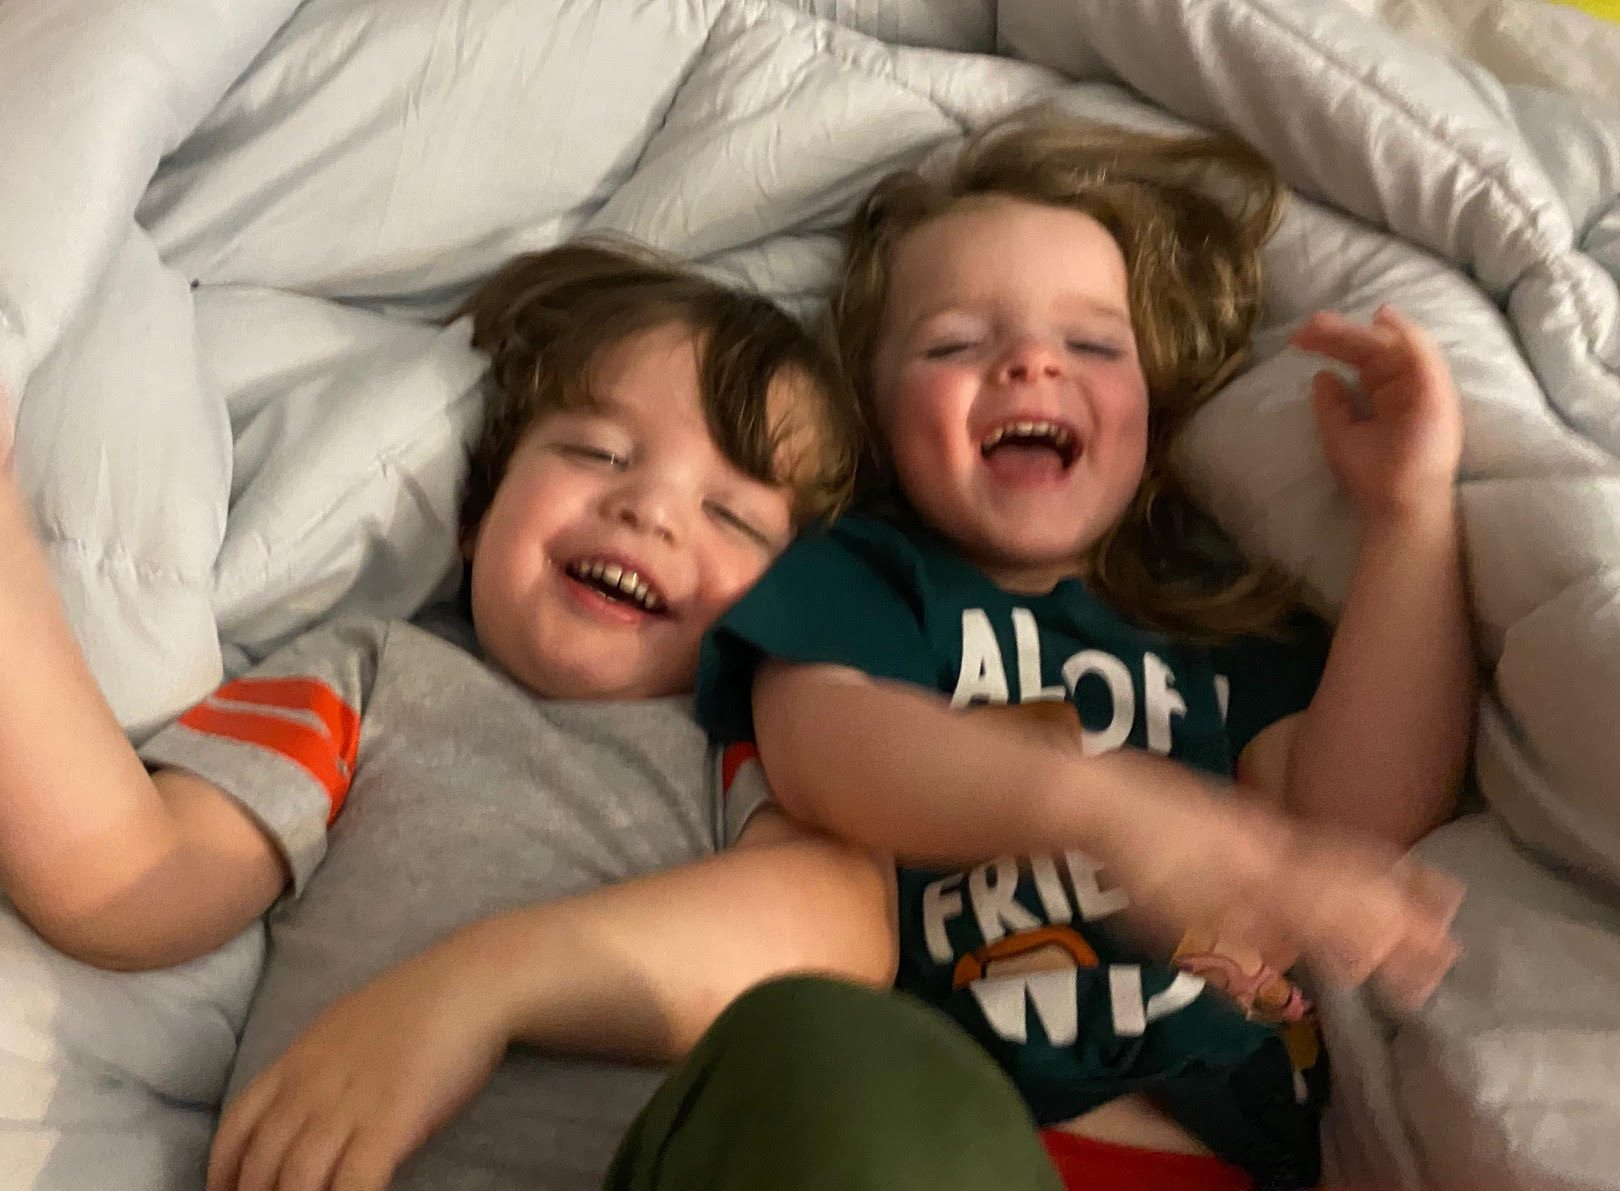 """Same-sex parents -Jeffrey Bernstein is a father, husband, and a """"co-conspirator"""" taking social action through his blog 'Not The Momma' where he writes love letters to his twins and shares his everyday life as a parent with others. Building a Family"""